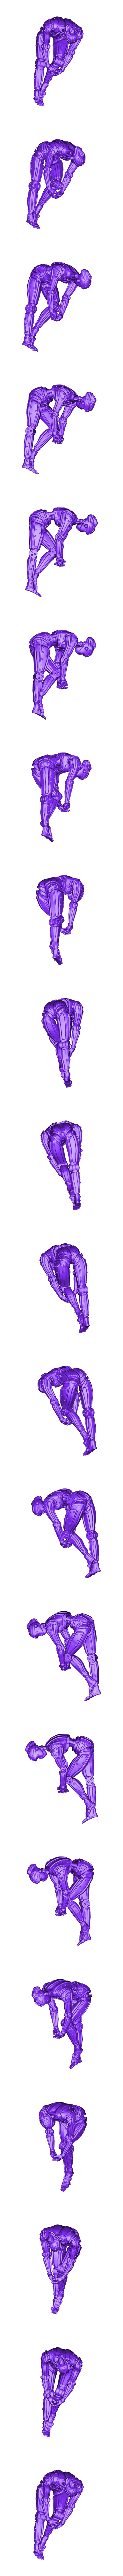 Female Humanoid Robot.stl Download free STL file Female Humanoid Robot • Design to 3D print, Tini